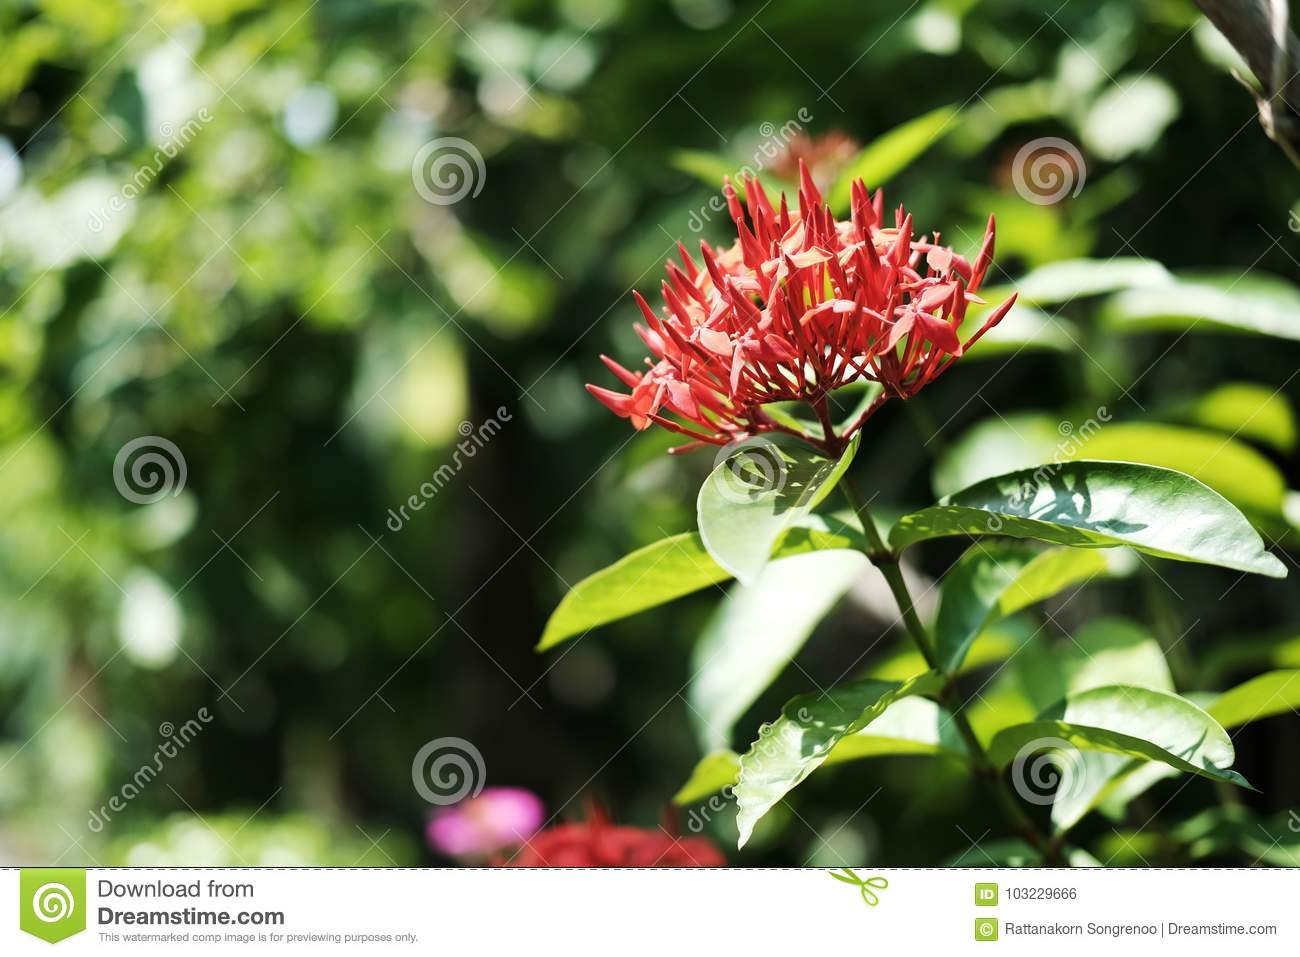 Ixora chinensis lamk or red west indian jasmine flower stock photo ixora chinensis lamk or red west indian jasmine flower izmirmasajfo